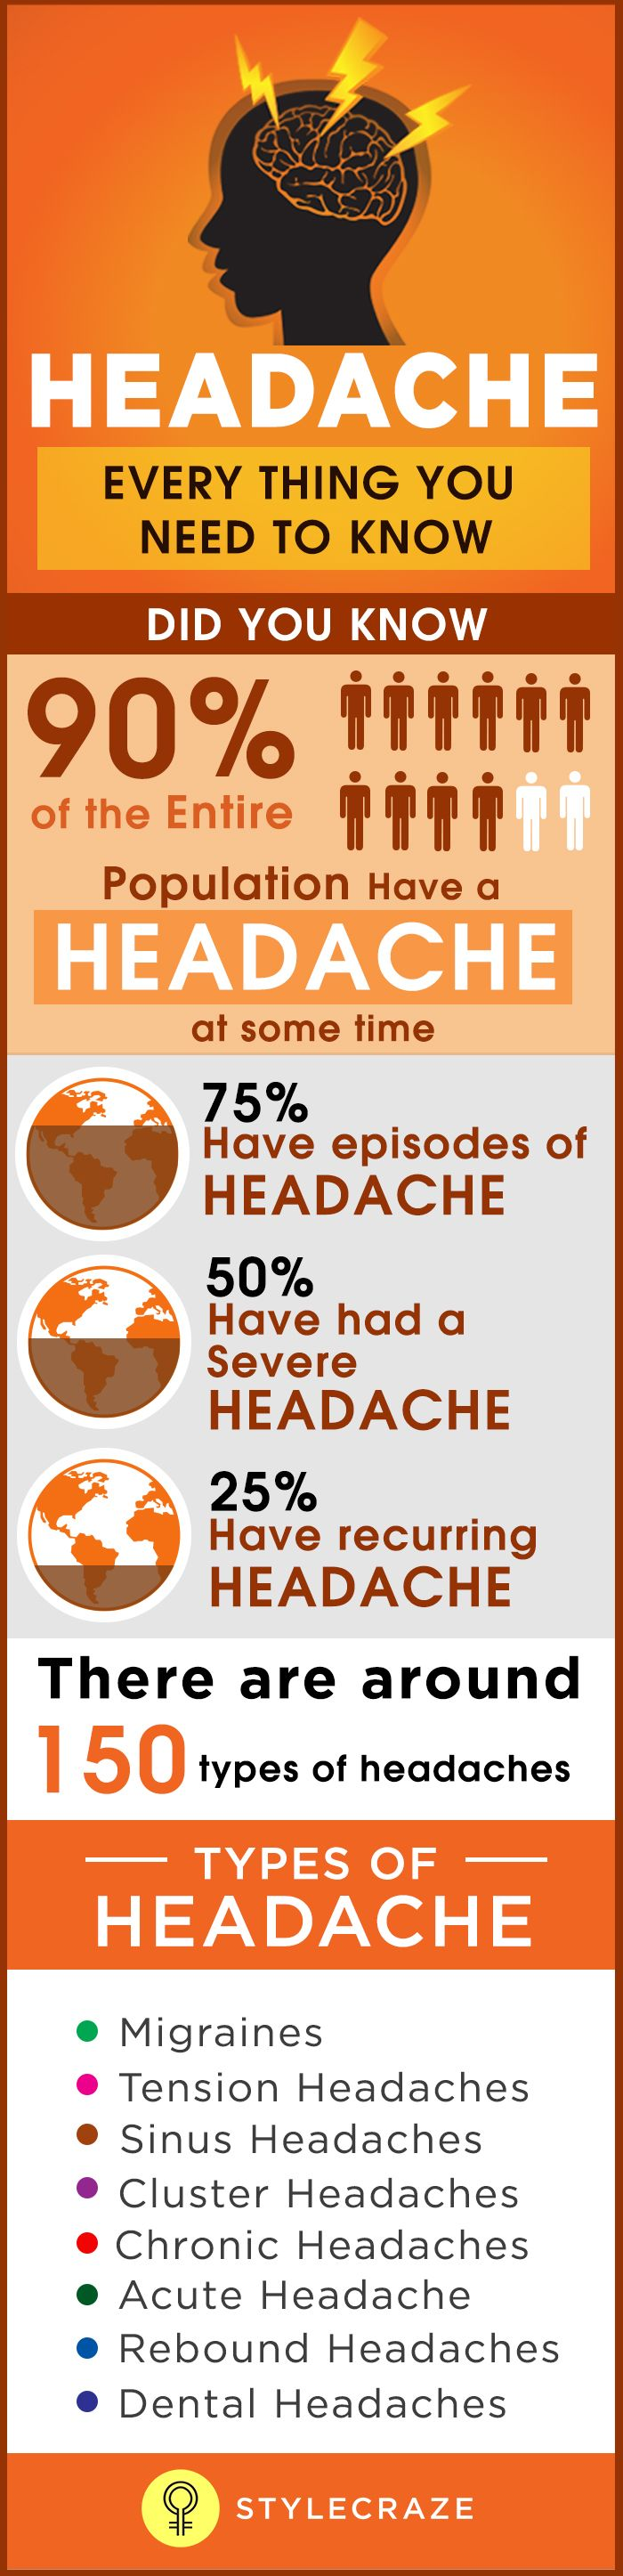 When your life becomes extremely busy and stressful, headaches become a very normal part of your daily routine. While most types of headache disappear on their own after some time, a few vanish only after you pop a painkiller.